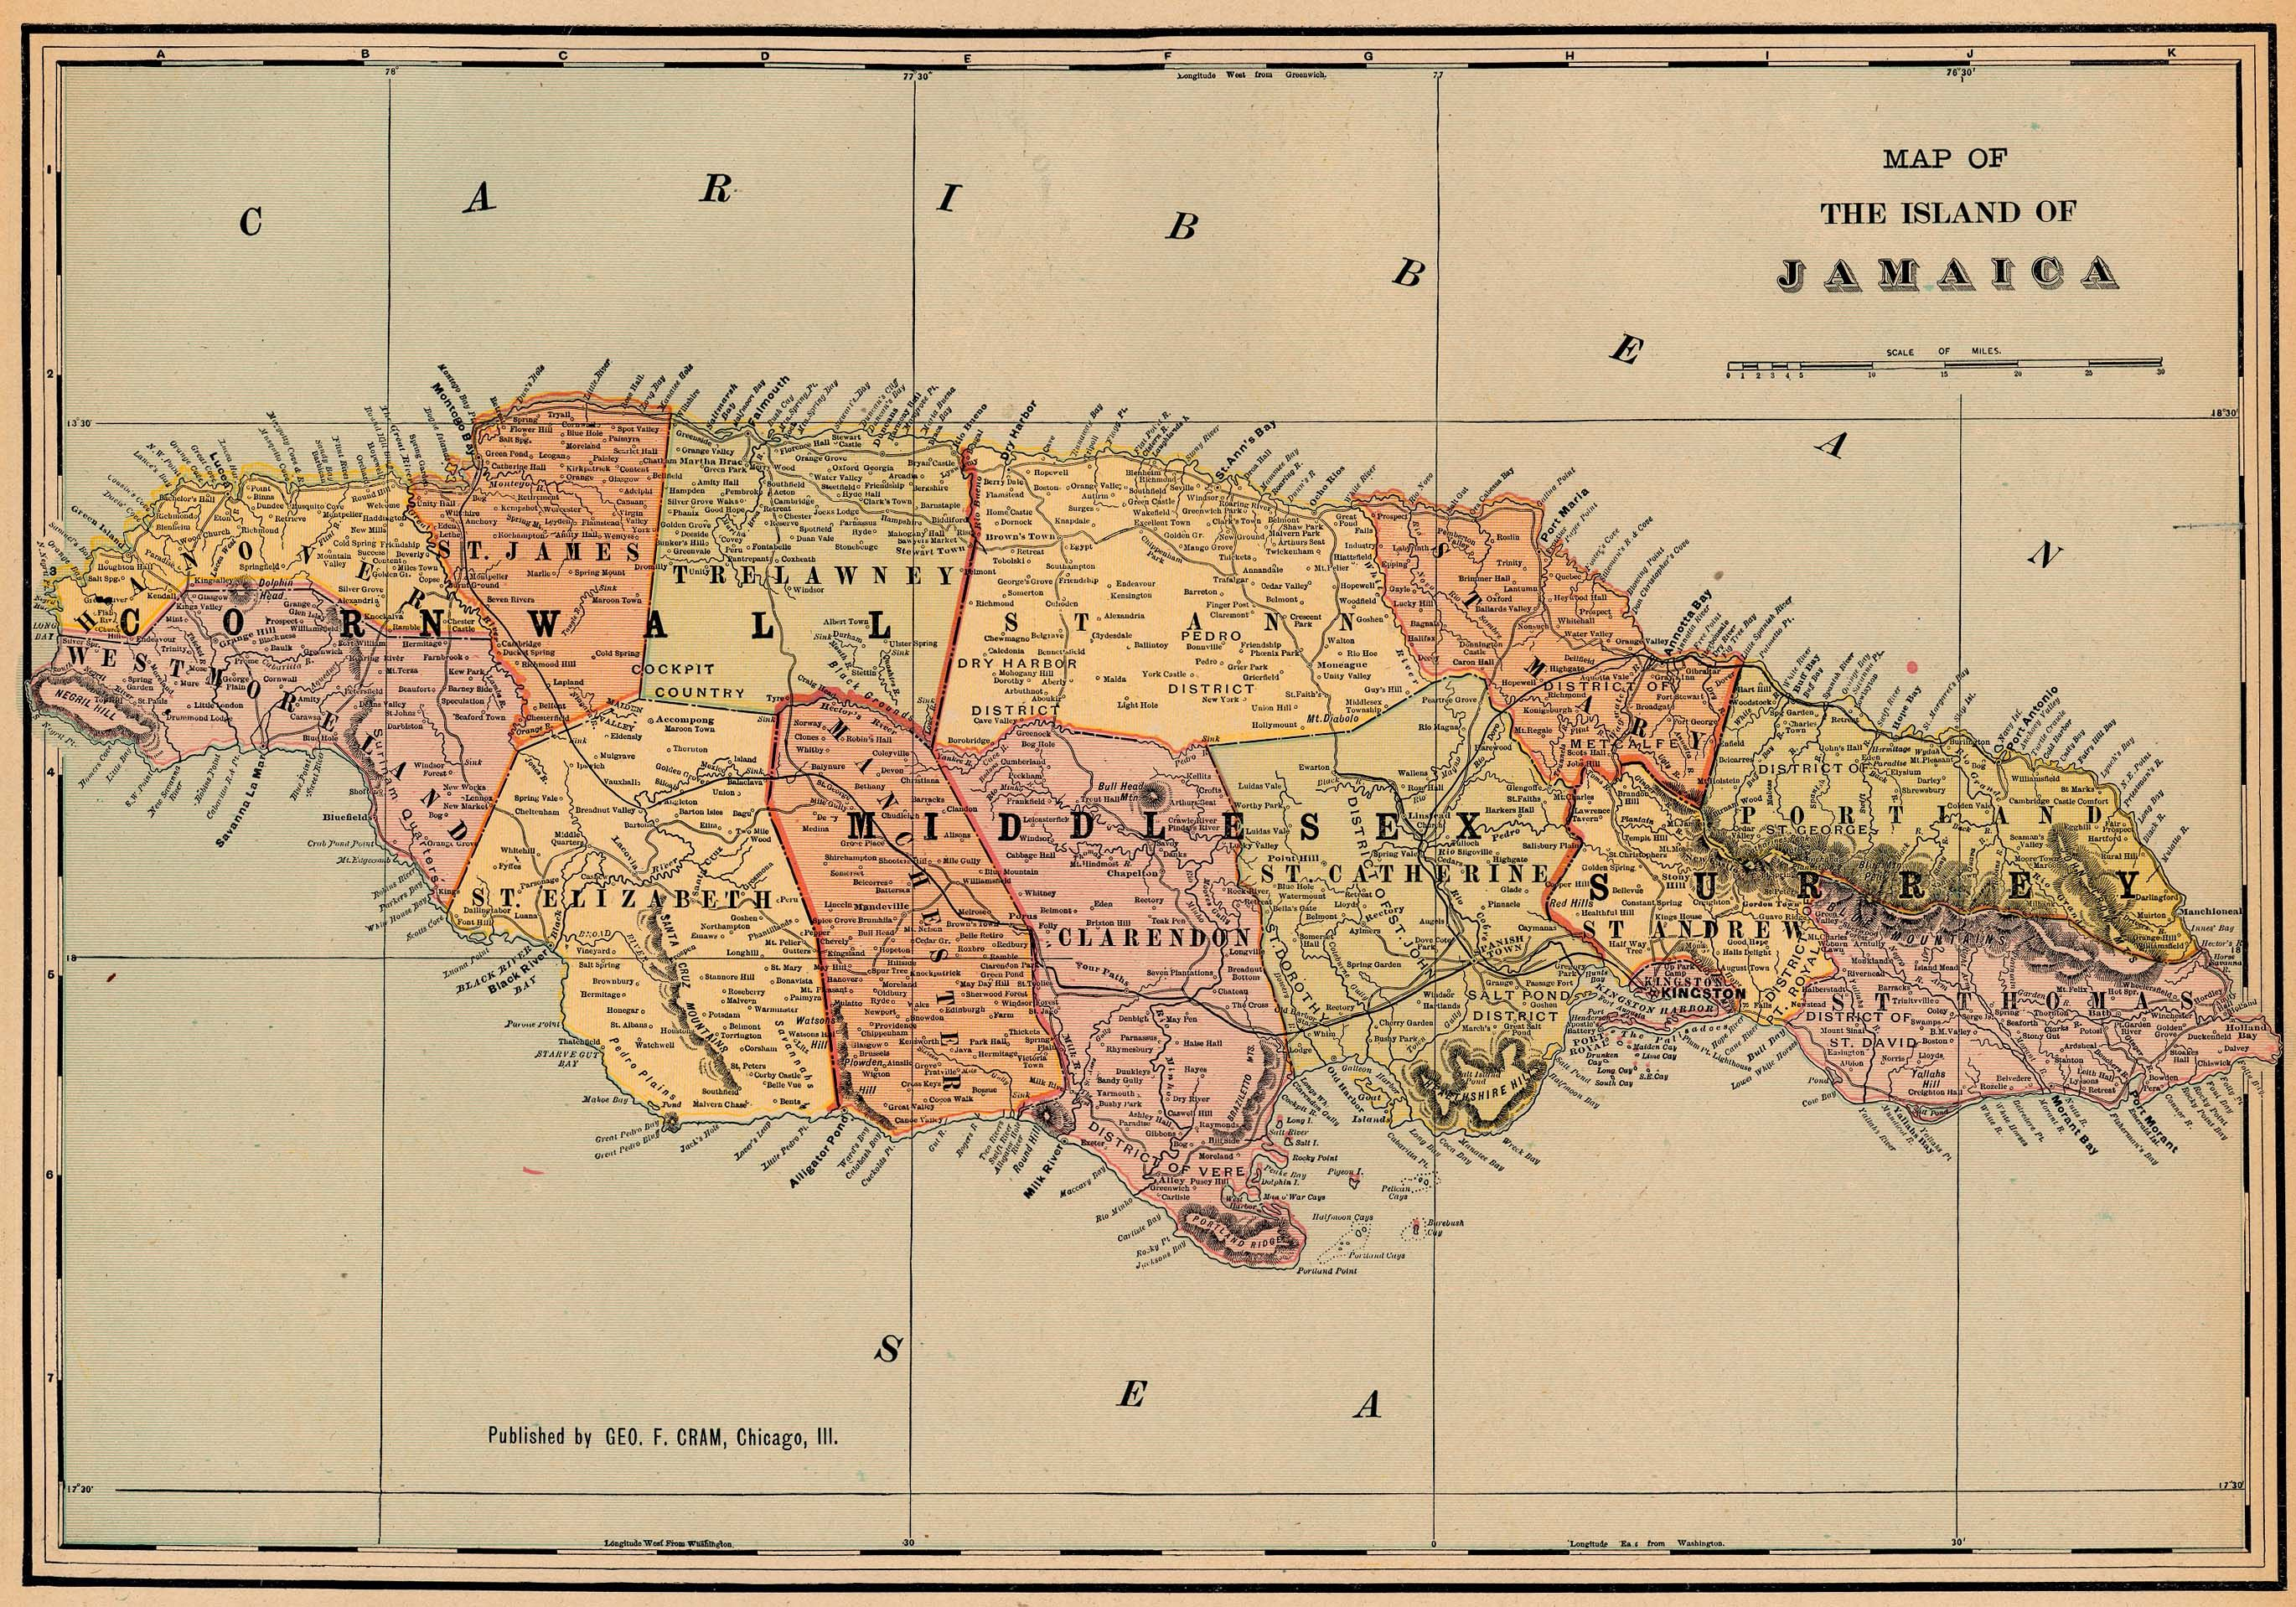 NationMaster Maps Of Jamaica In Total Jamaica Pinterest - Vintage map of jamaica